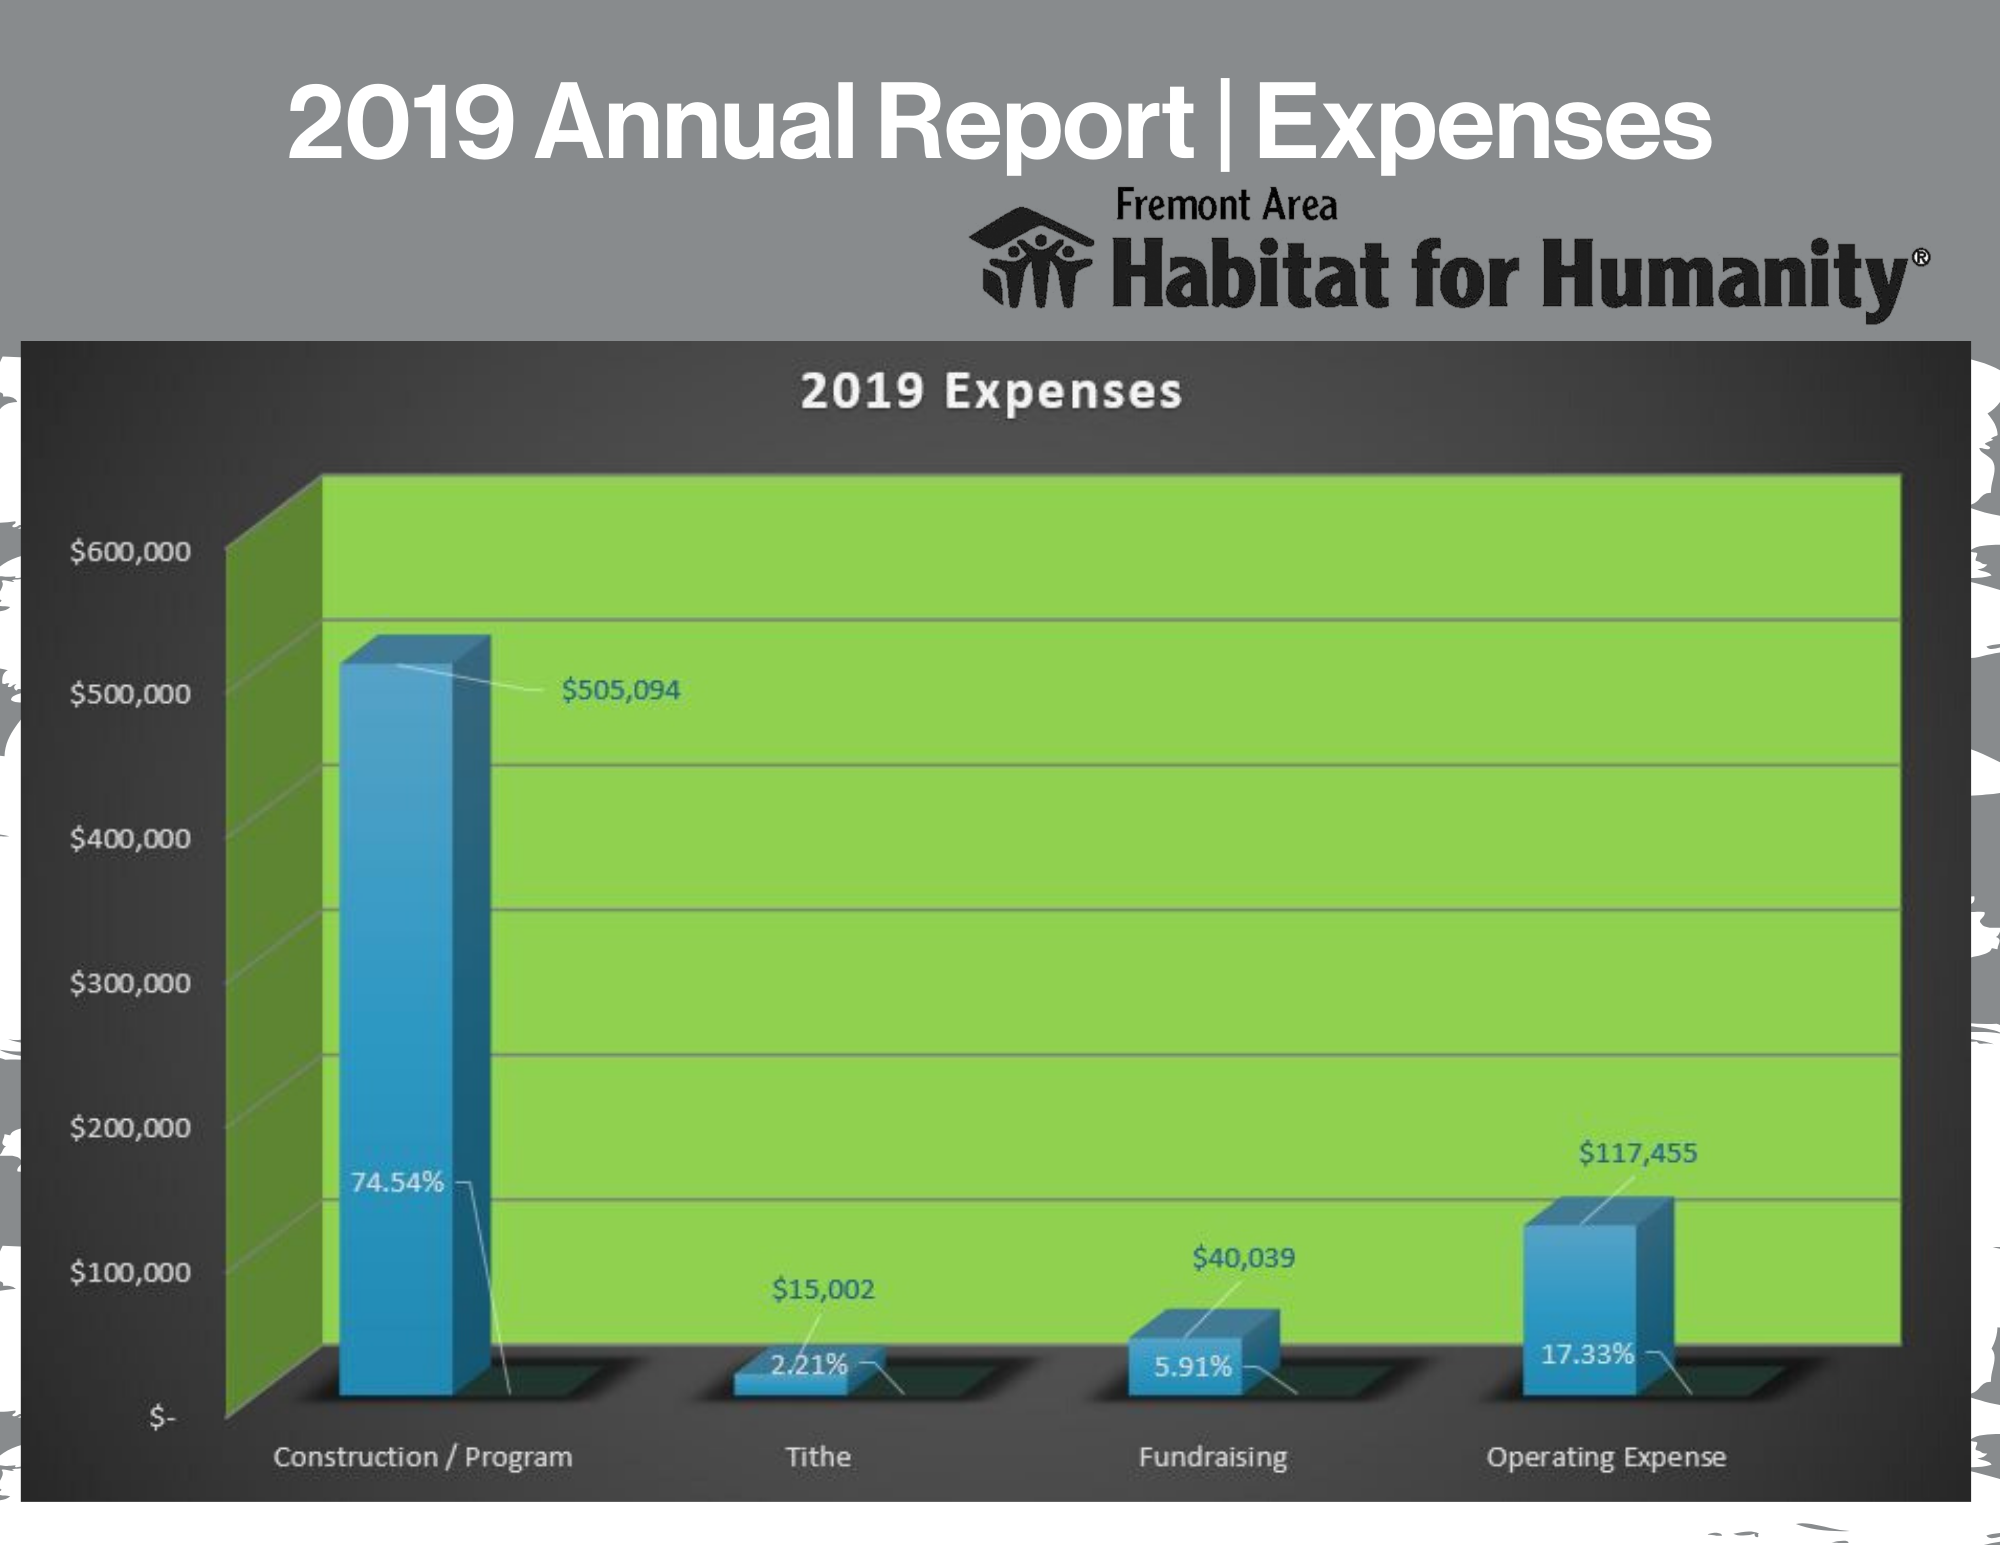 2019 Annual Report - Expenses